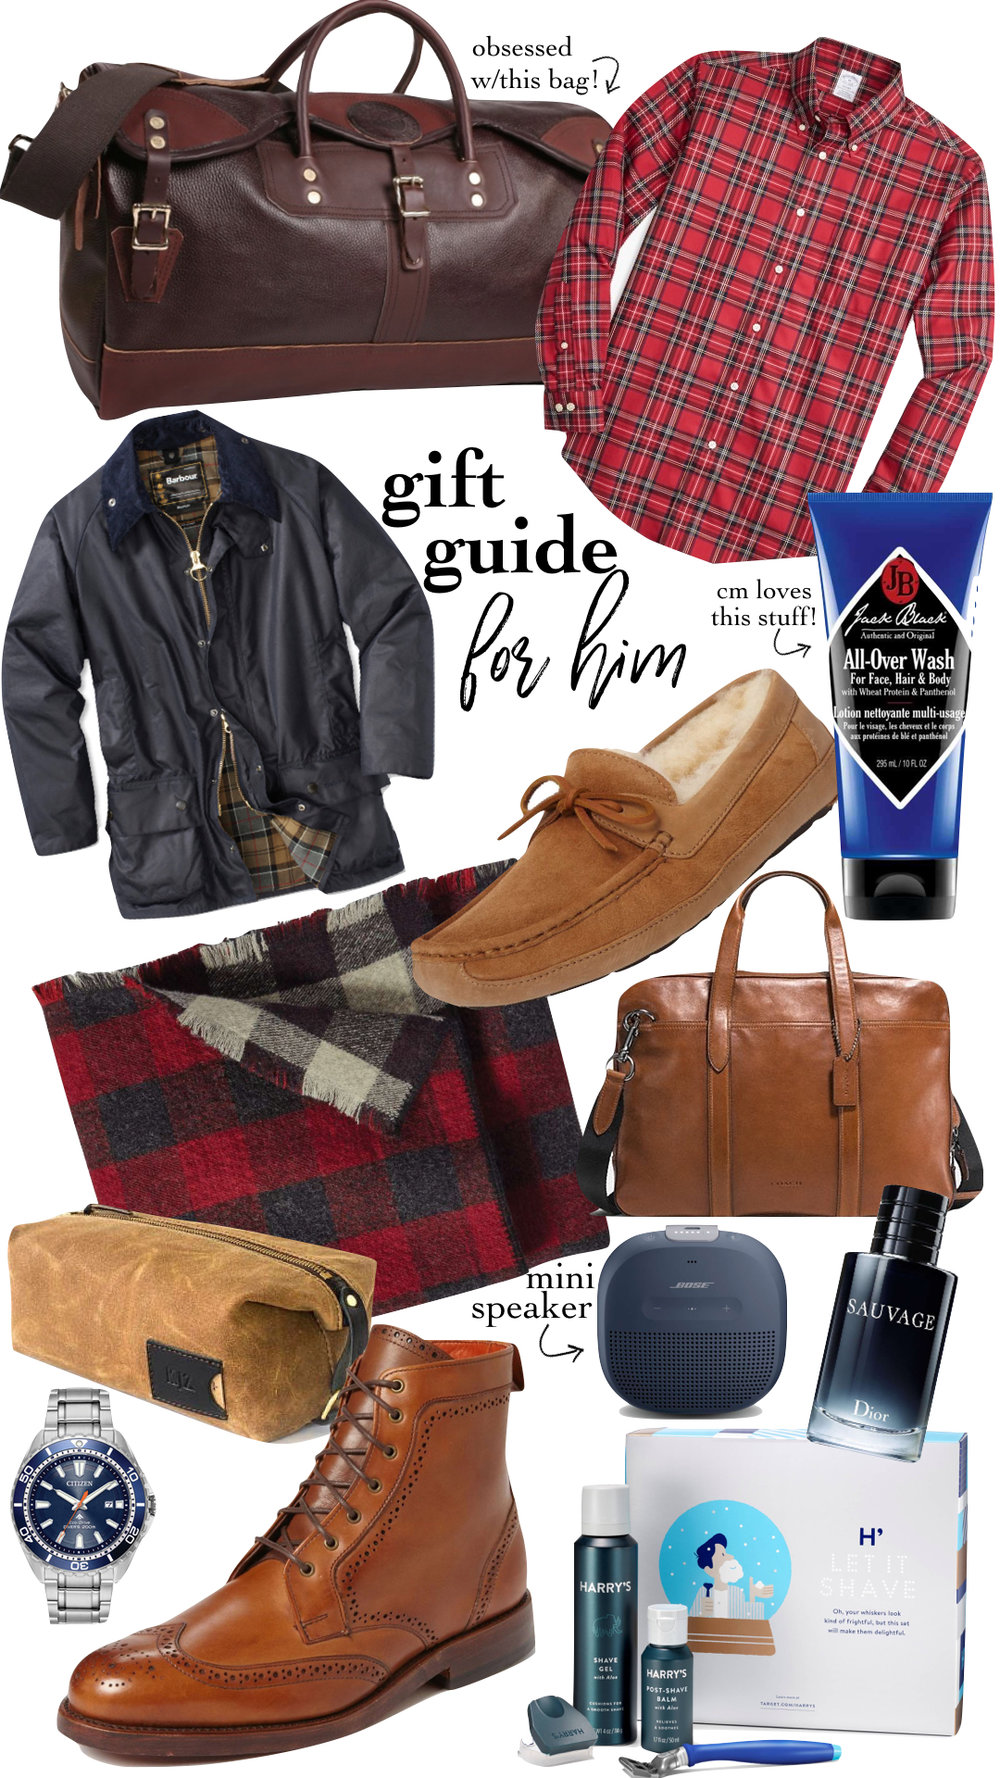 GIFT GUIDE FOR HIM -